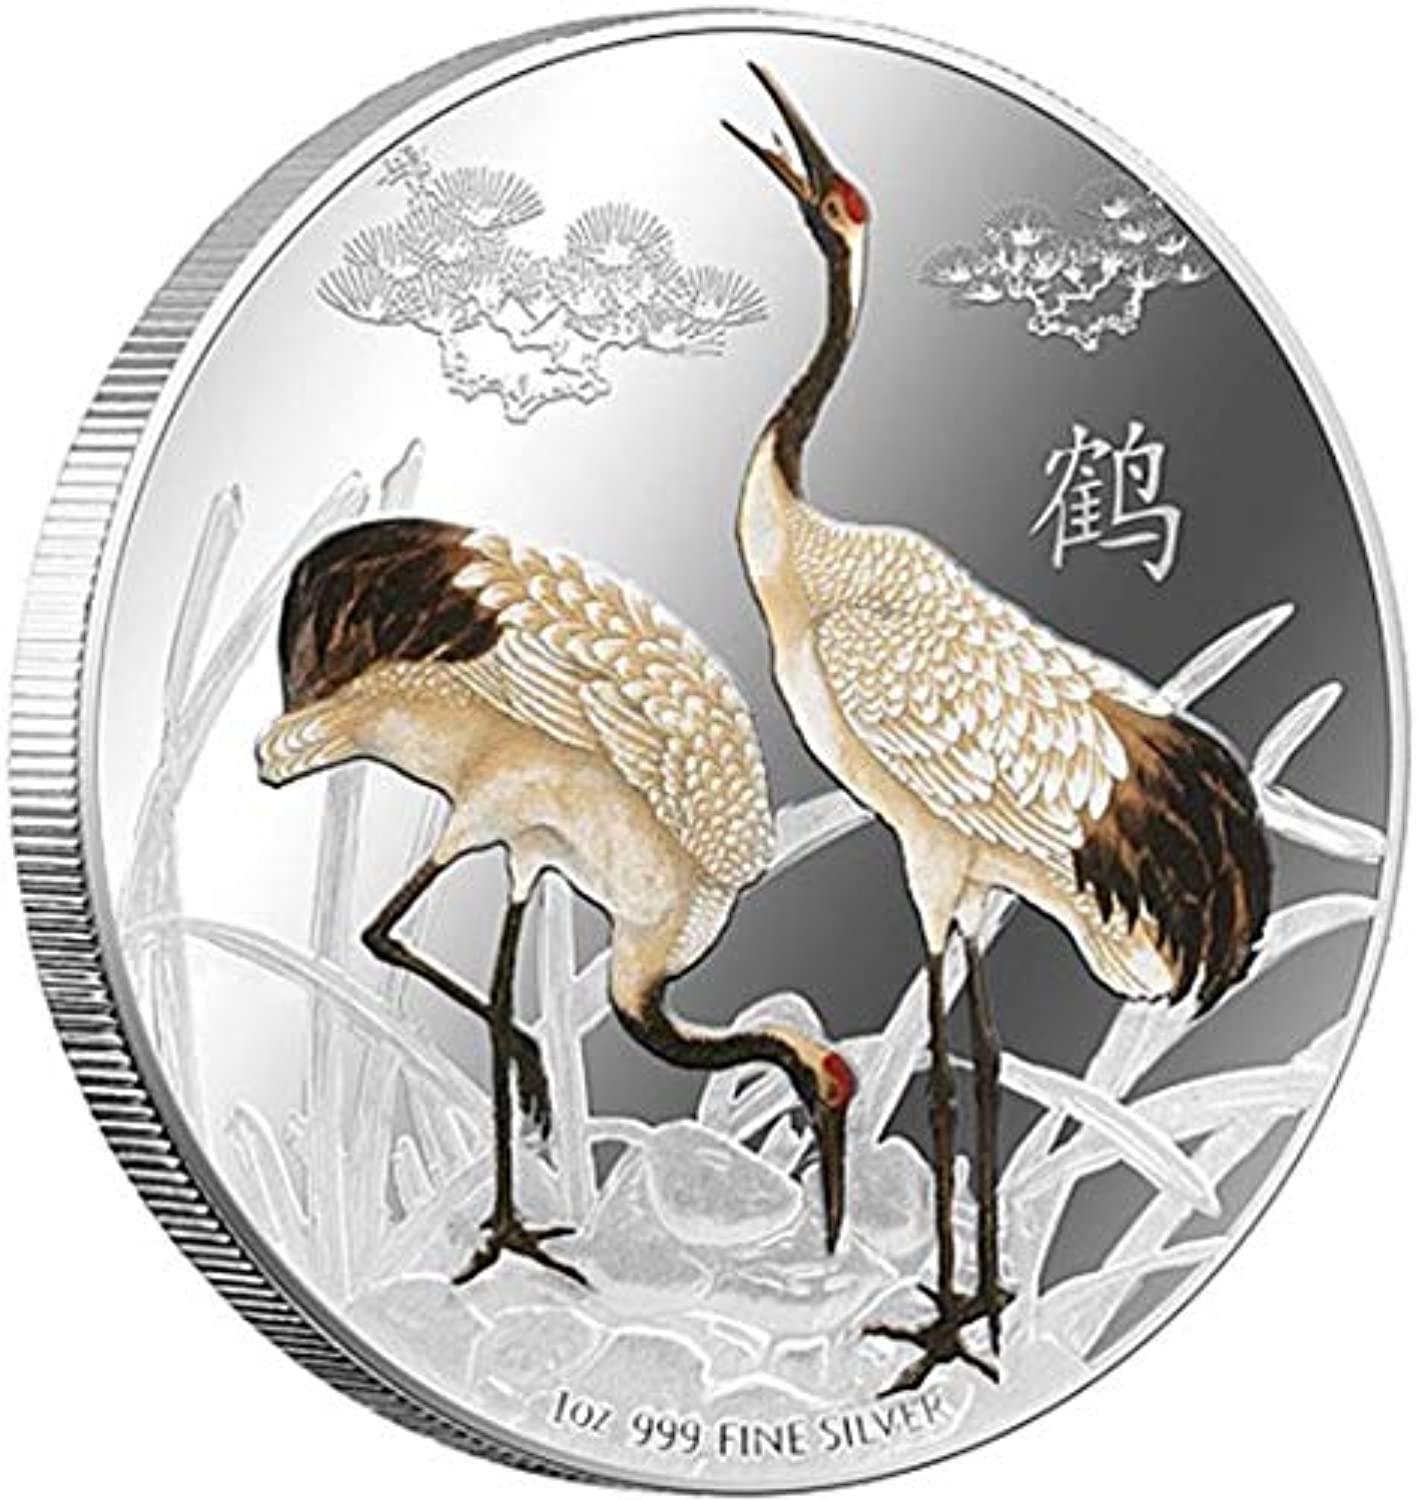 2013 Sovereign Nation of Niue, Feng Shui – Cranes.999 Pure Silber Proof Coin, 1 of 8000 Ever Minted